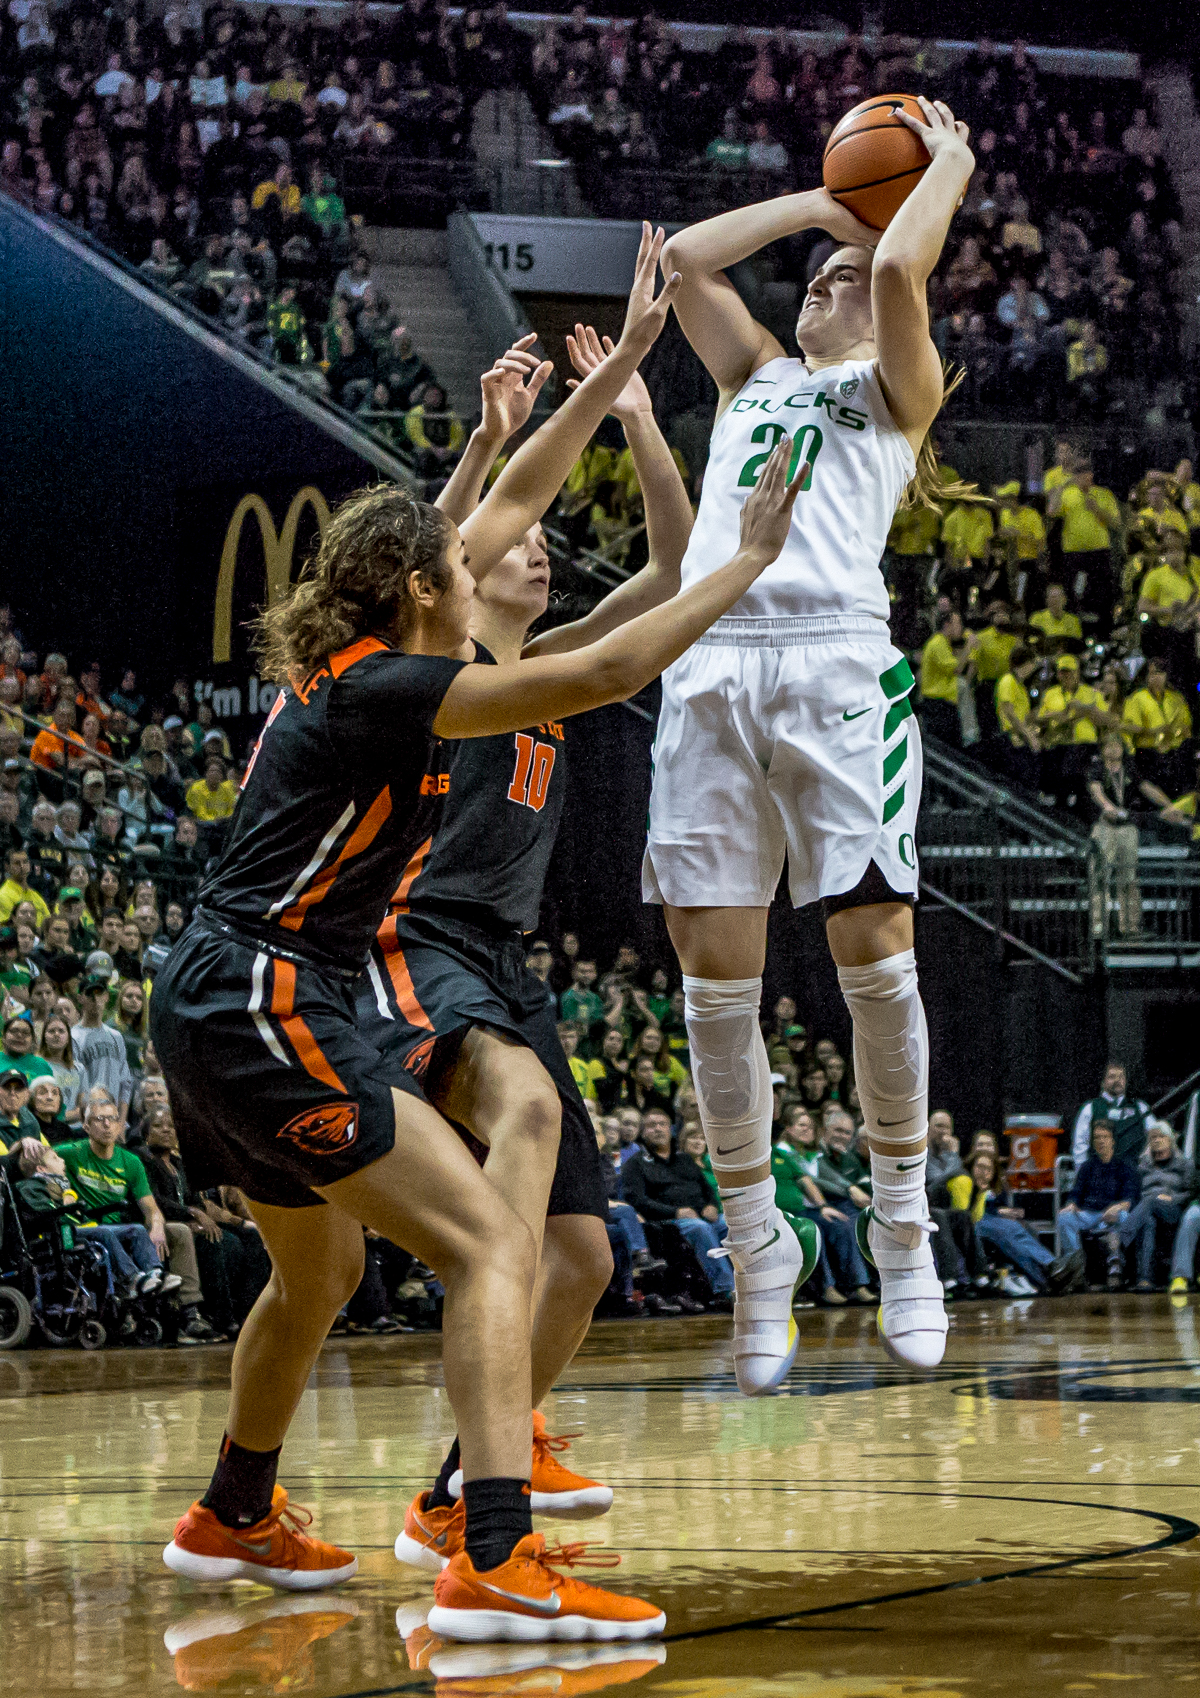 Oregon guard Sabrina Ionescu (#20) leaps to shoot over two Oregon State defenders. The Oregon Ducks defeated the Oregon State Beavers 75-63 on Sunday afternoon in front of a crowd of 7,249 at Matthew Knight Arena. The Ducks and Beavers split the two game Civil War with the Beavers defeating the Ducks on Friday night in Corvallis. The Ducks had four players in double digits: Satou Sabally with 21 points, Maite Cazorla with 16, Sabrina Ionescu with 15, and Mallory McGwire with 14. The Ducks shot 48.4% from the floor compared to the Beavers 37.3%. The Ducks are now 7-1 in conference play. Photo by Ben Lonergan, Oregon News Lab